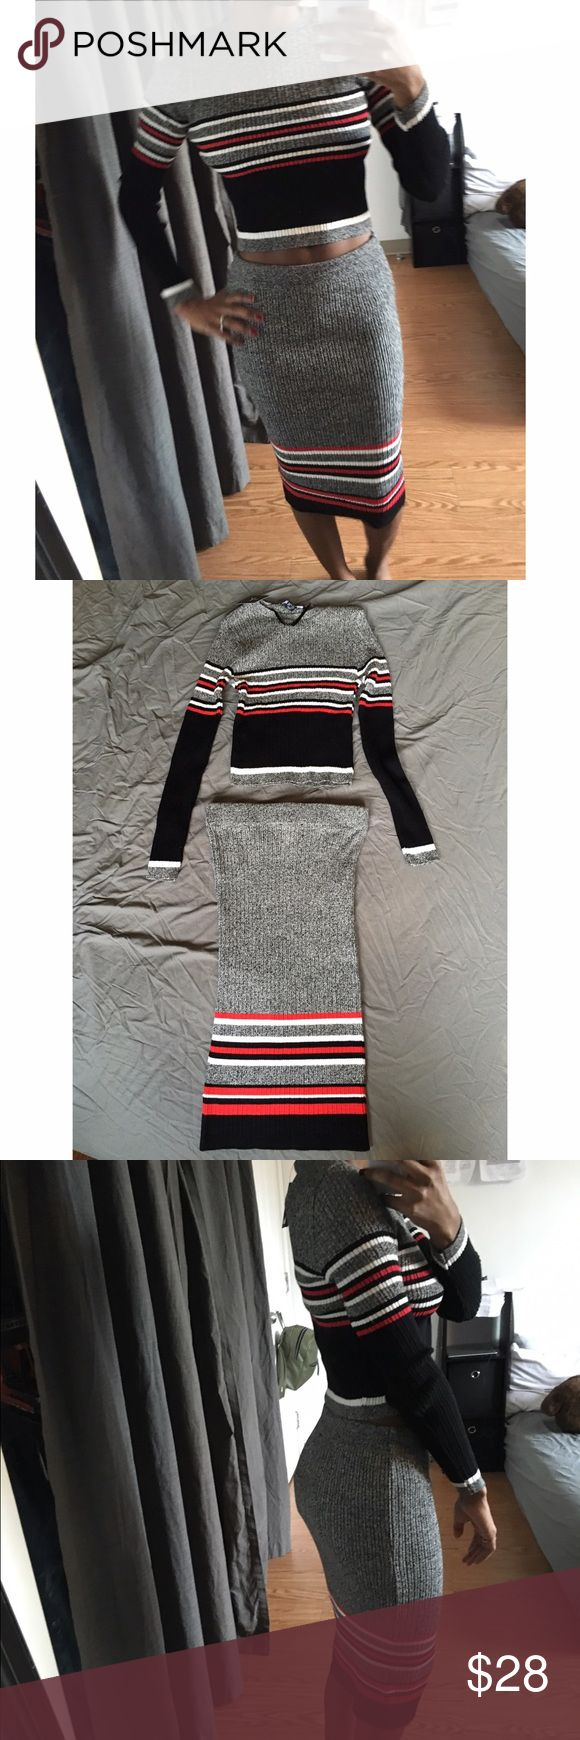 Two piece sweater and skirt set New with tags. Sweater material. Size 2/4 (will fit a small or extra small. Cropped long sleeve top and a midi length skirt. No trades or Paypal. Will ship next day. Other